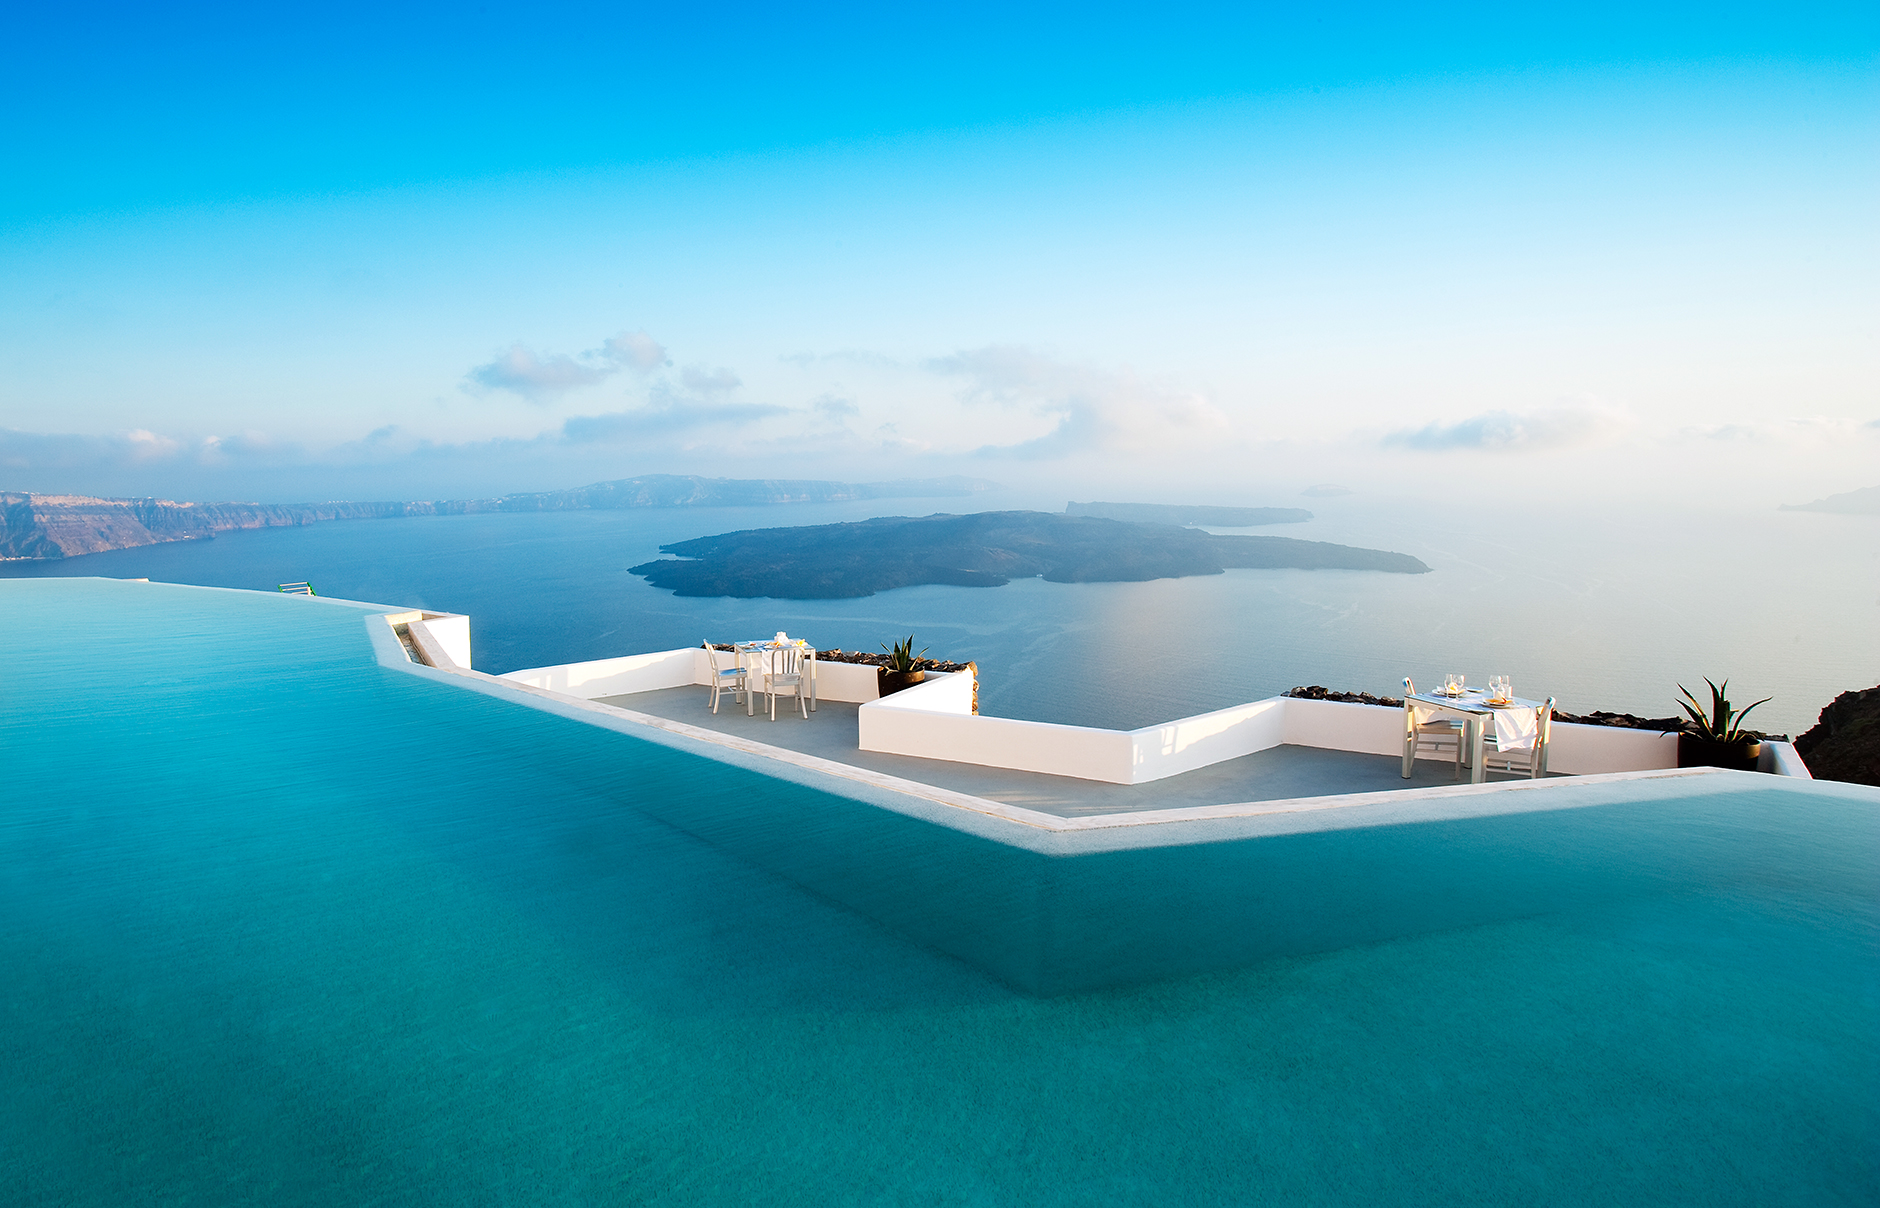 Top 5 luxury boutique hotels of the world - Top 10 Cliff Edge Santorini Hotels Design Buffs Will Love